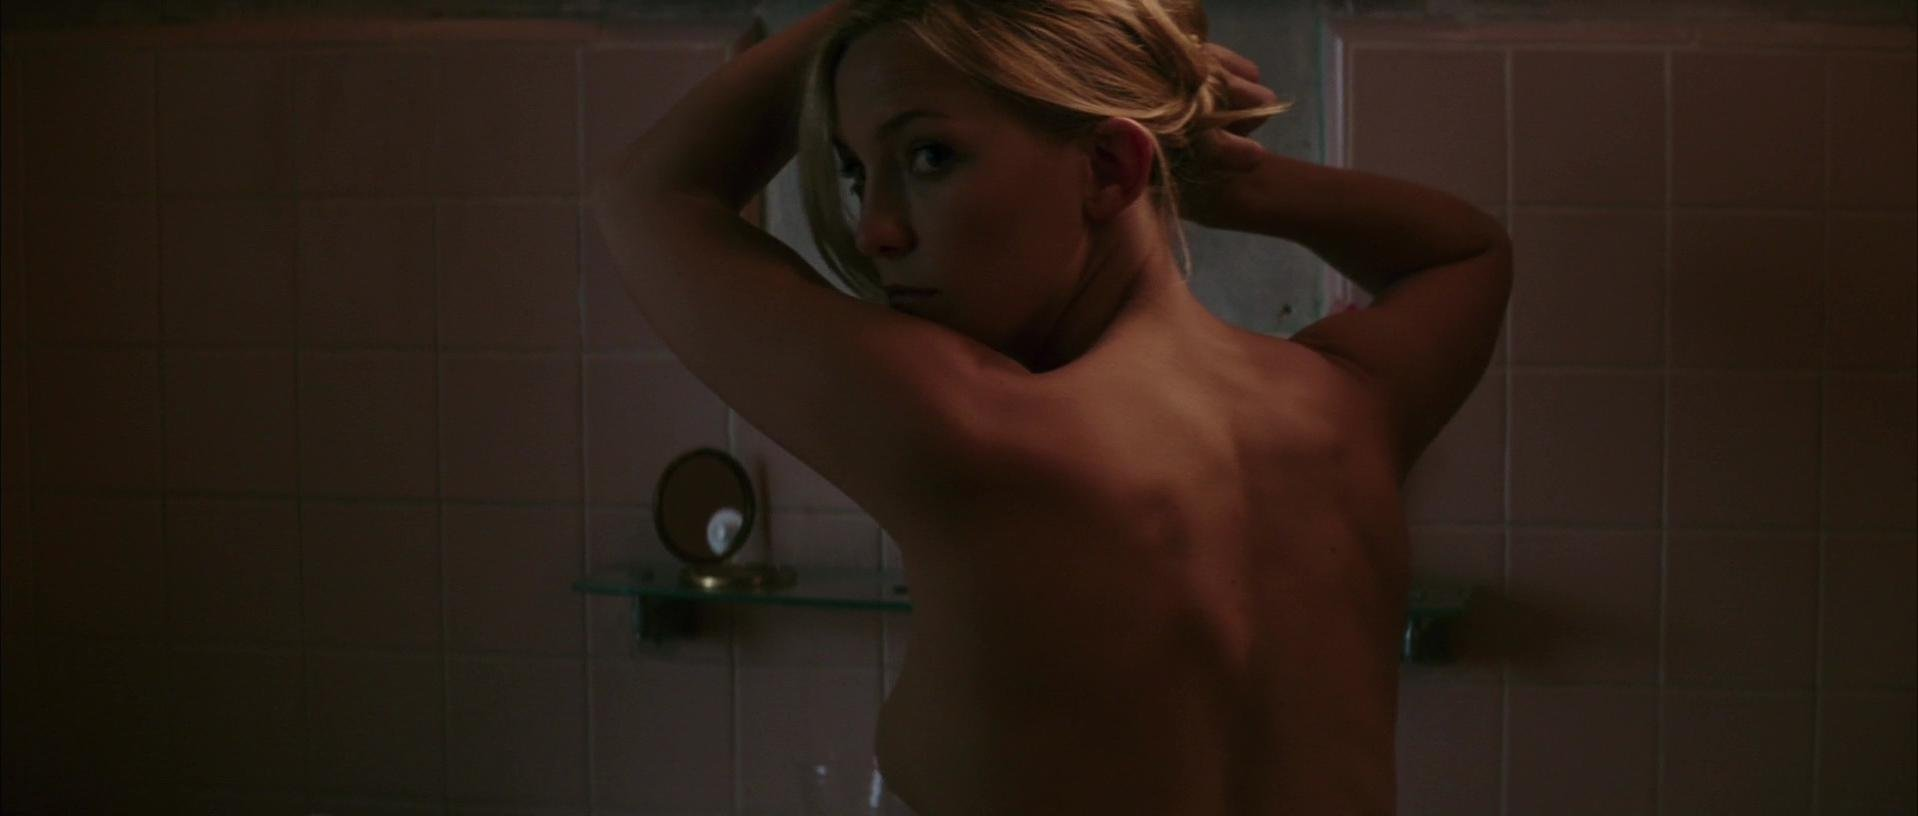 Kate Hudson sexy - The Skeleton Key (2005)